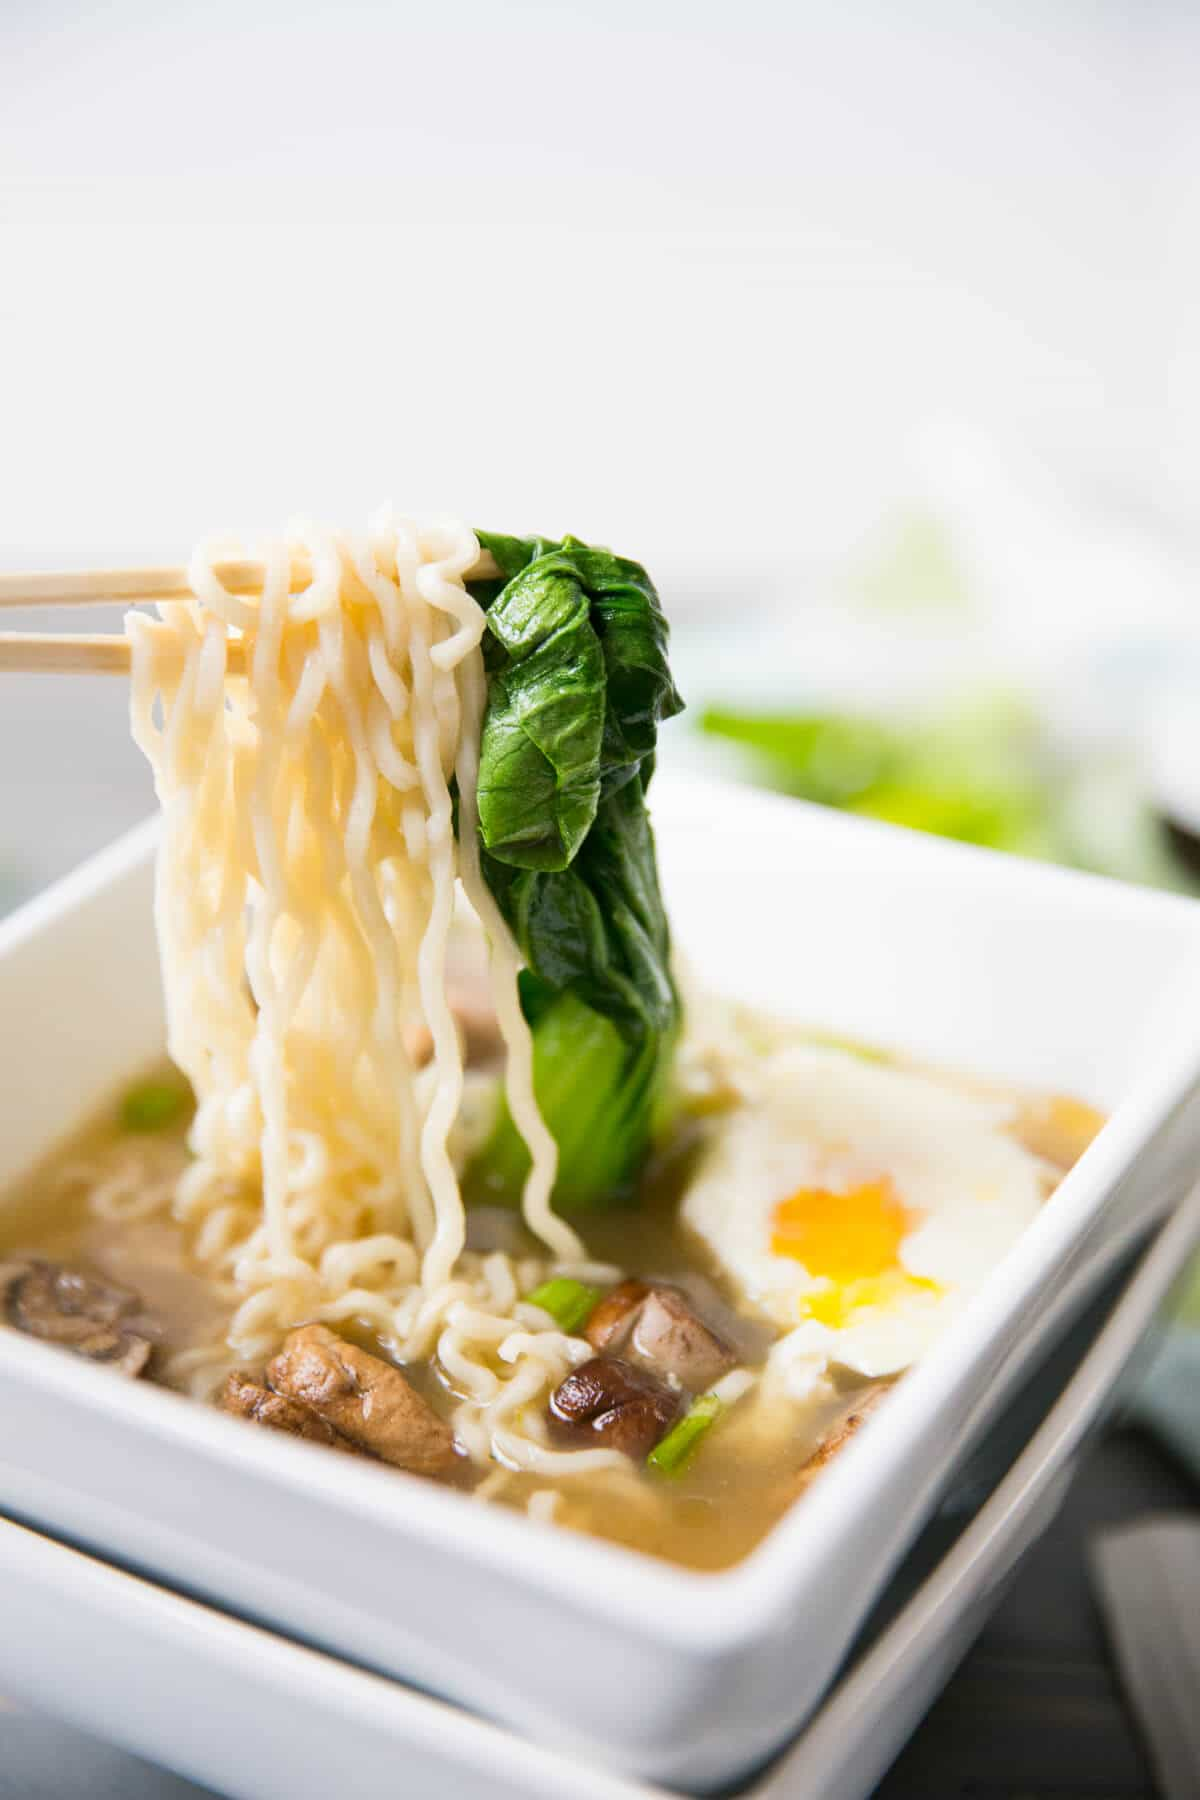 This Ramen Noodle Soup could replace chicken noodle soup as the most comforting soup in the world! The broth is full bodied, the ingredients simple and the process fast and easy!